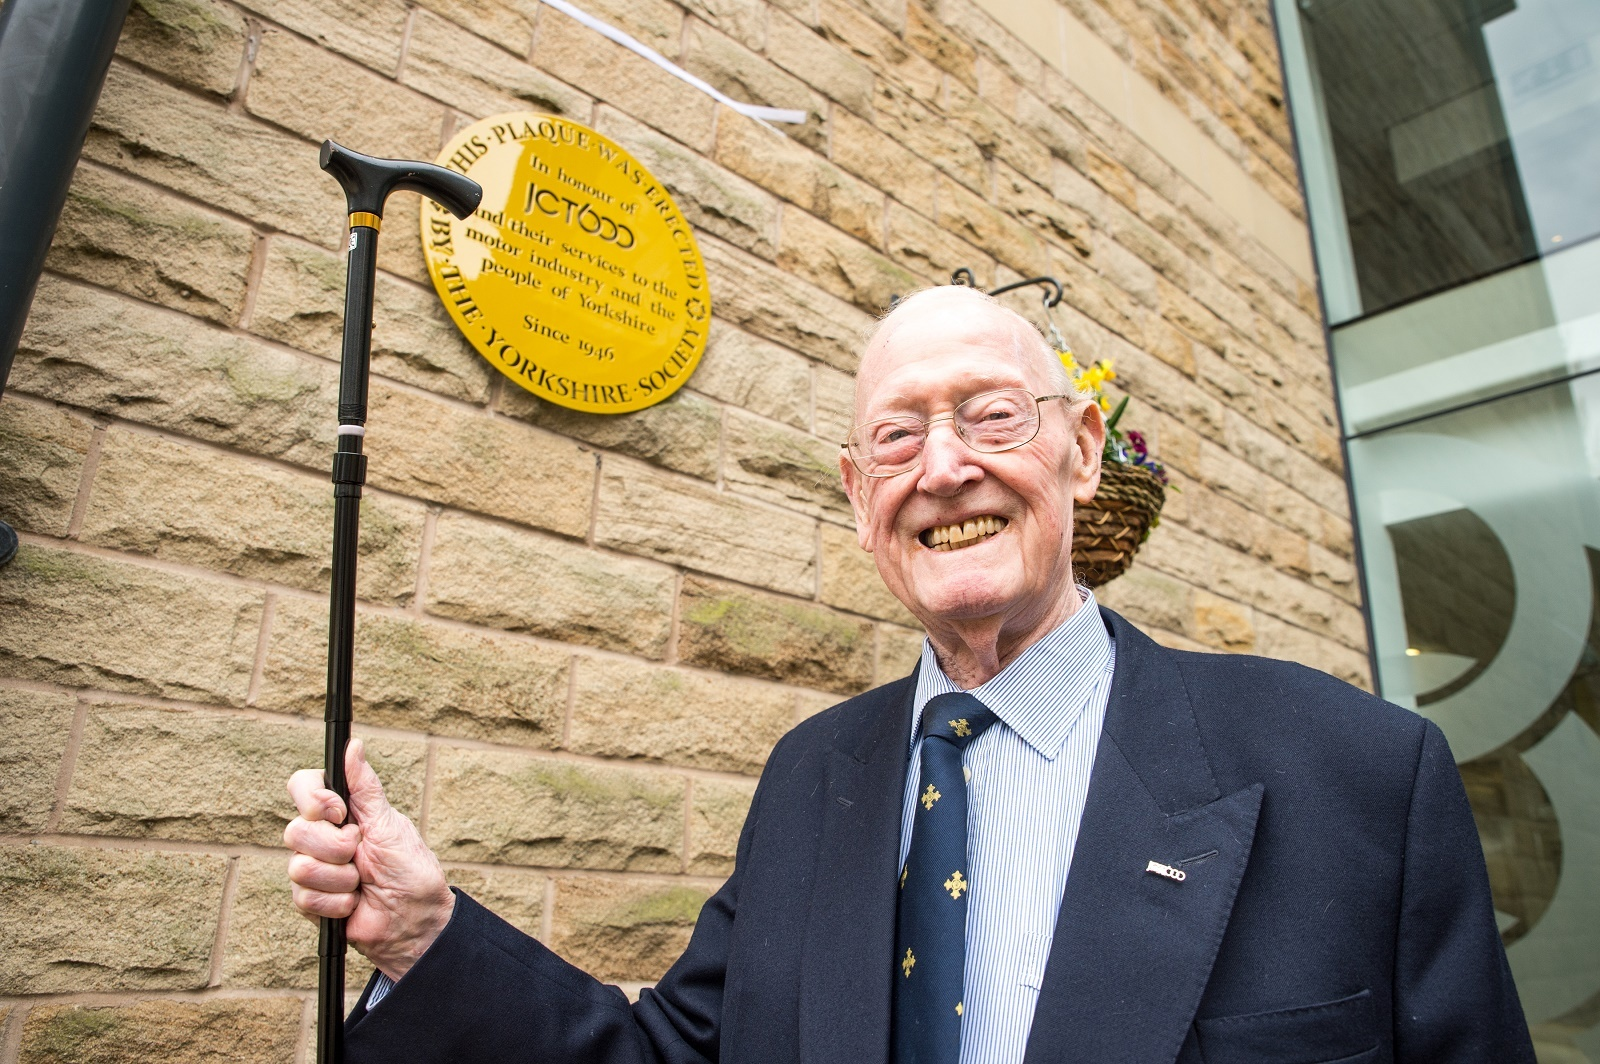 Jack Tordoff with the Yorkshire Society's new plaque at JCT600 headquarters.